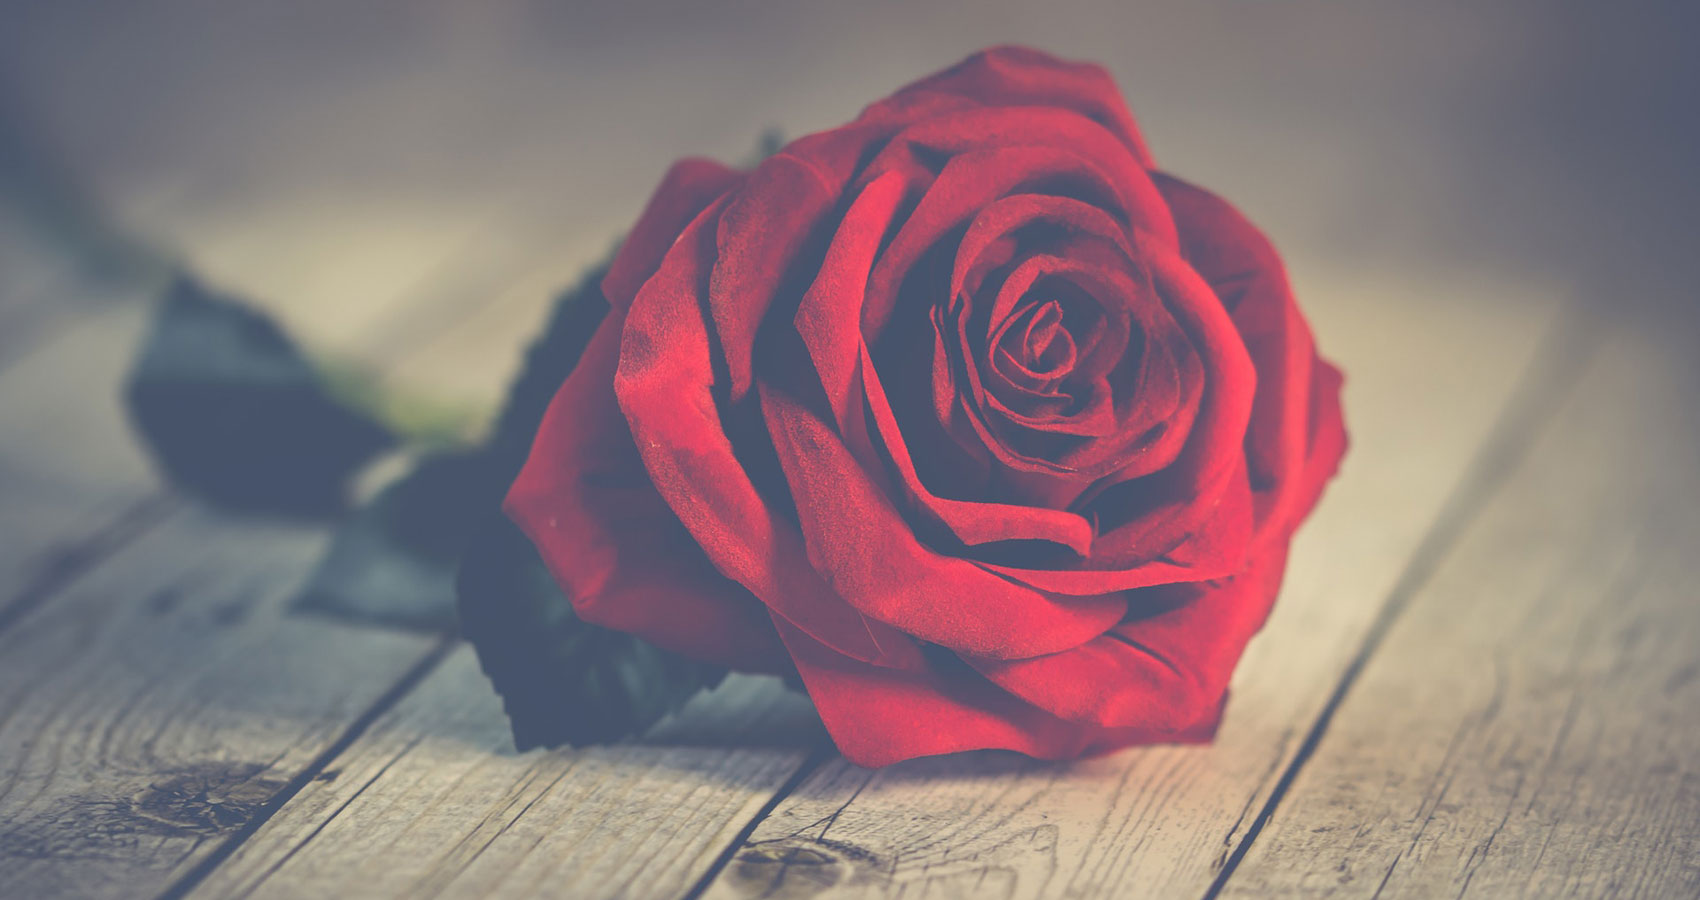 On Valentine's Day, a poem written by Sonali Majumdar at Spillwords.com